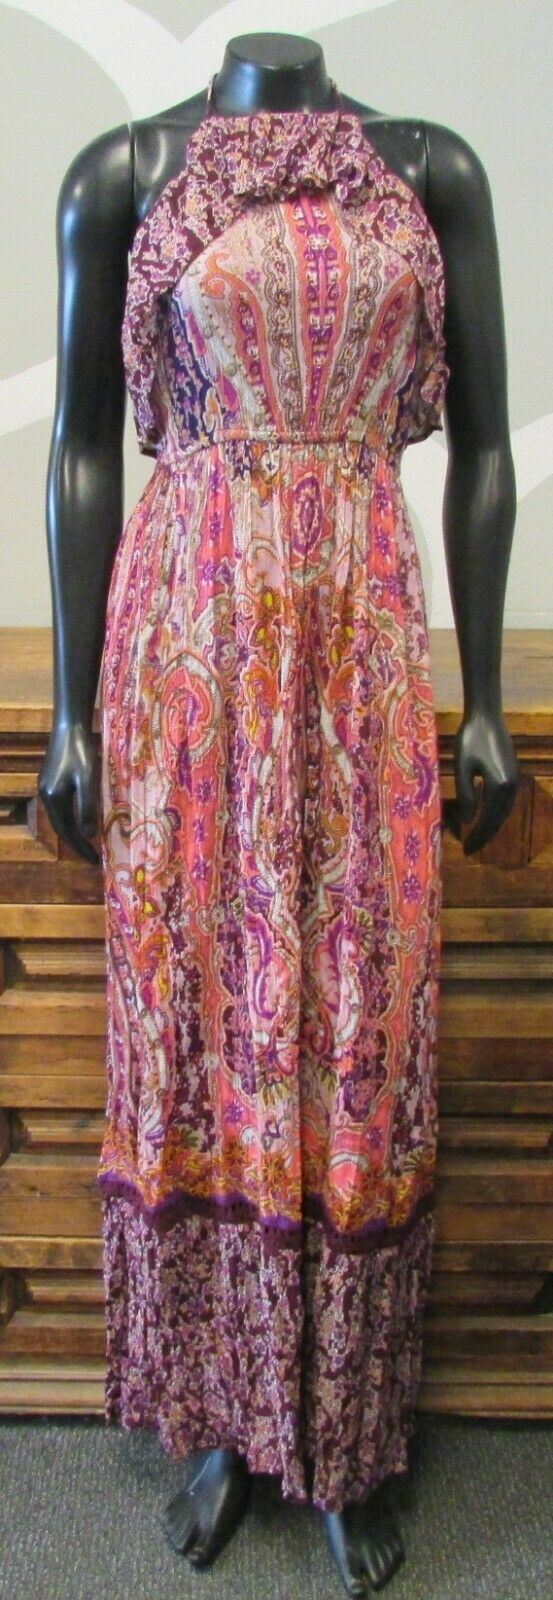 MIAMI Multi color Paisley Print Crinkle Ruffle Halter Top Maxi Dress - Small